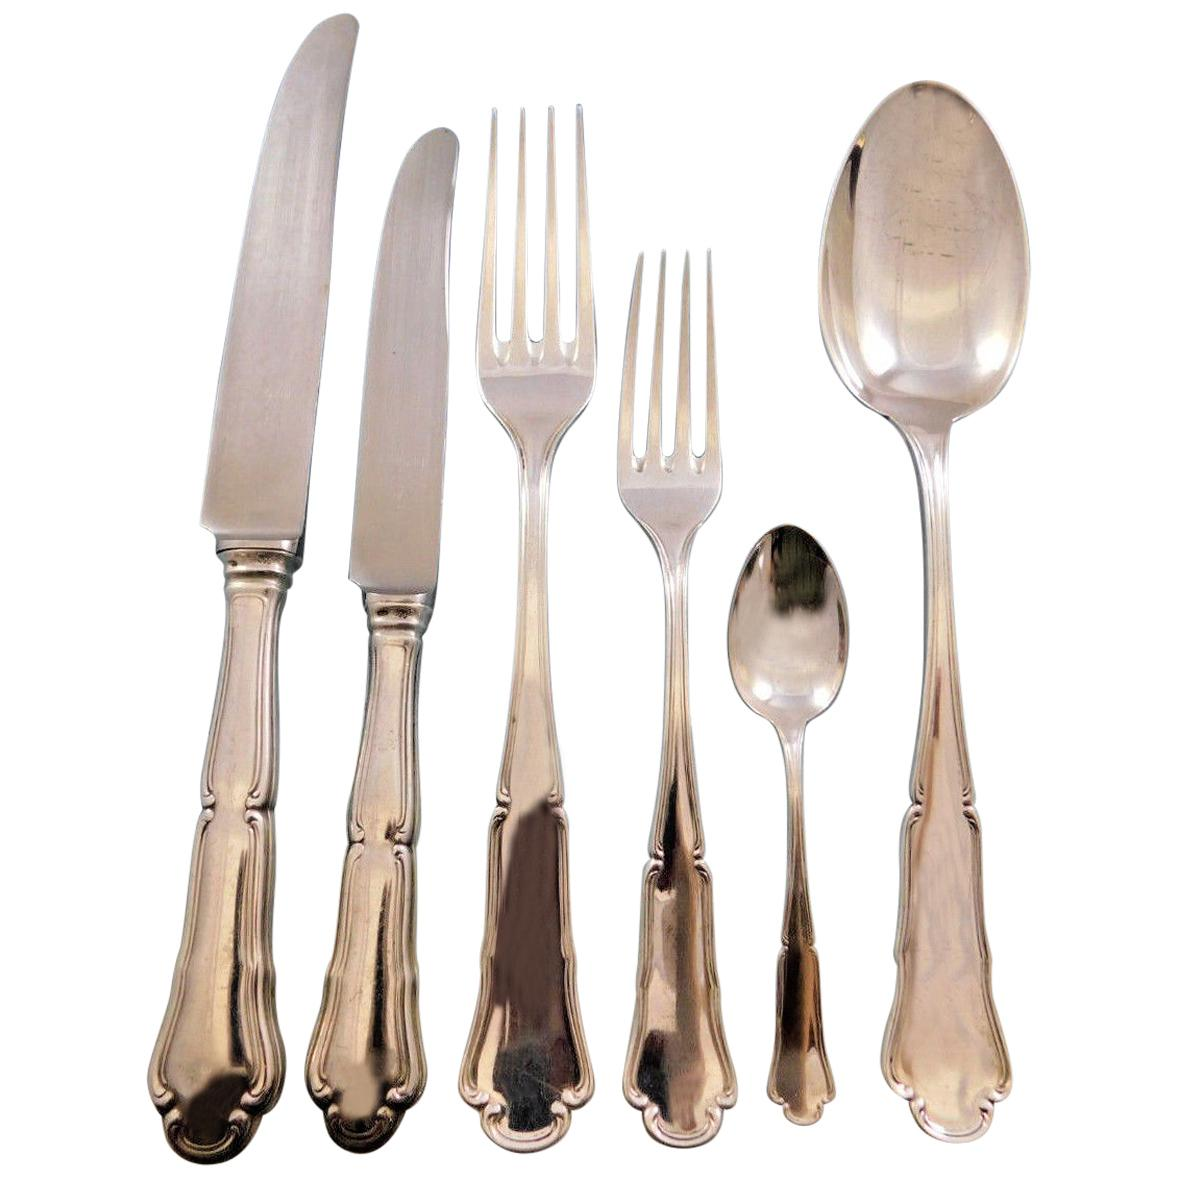 Savoy Italian Italy 800 Silver Flatware Set for 12 Service 77 Pieces Dinner Size